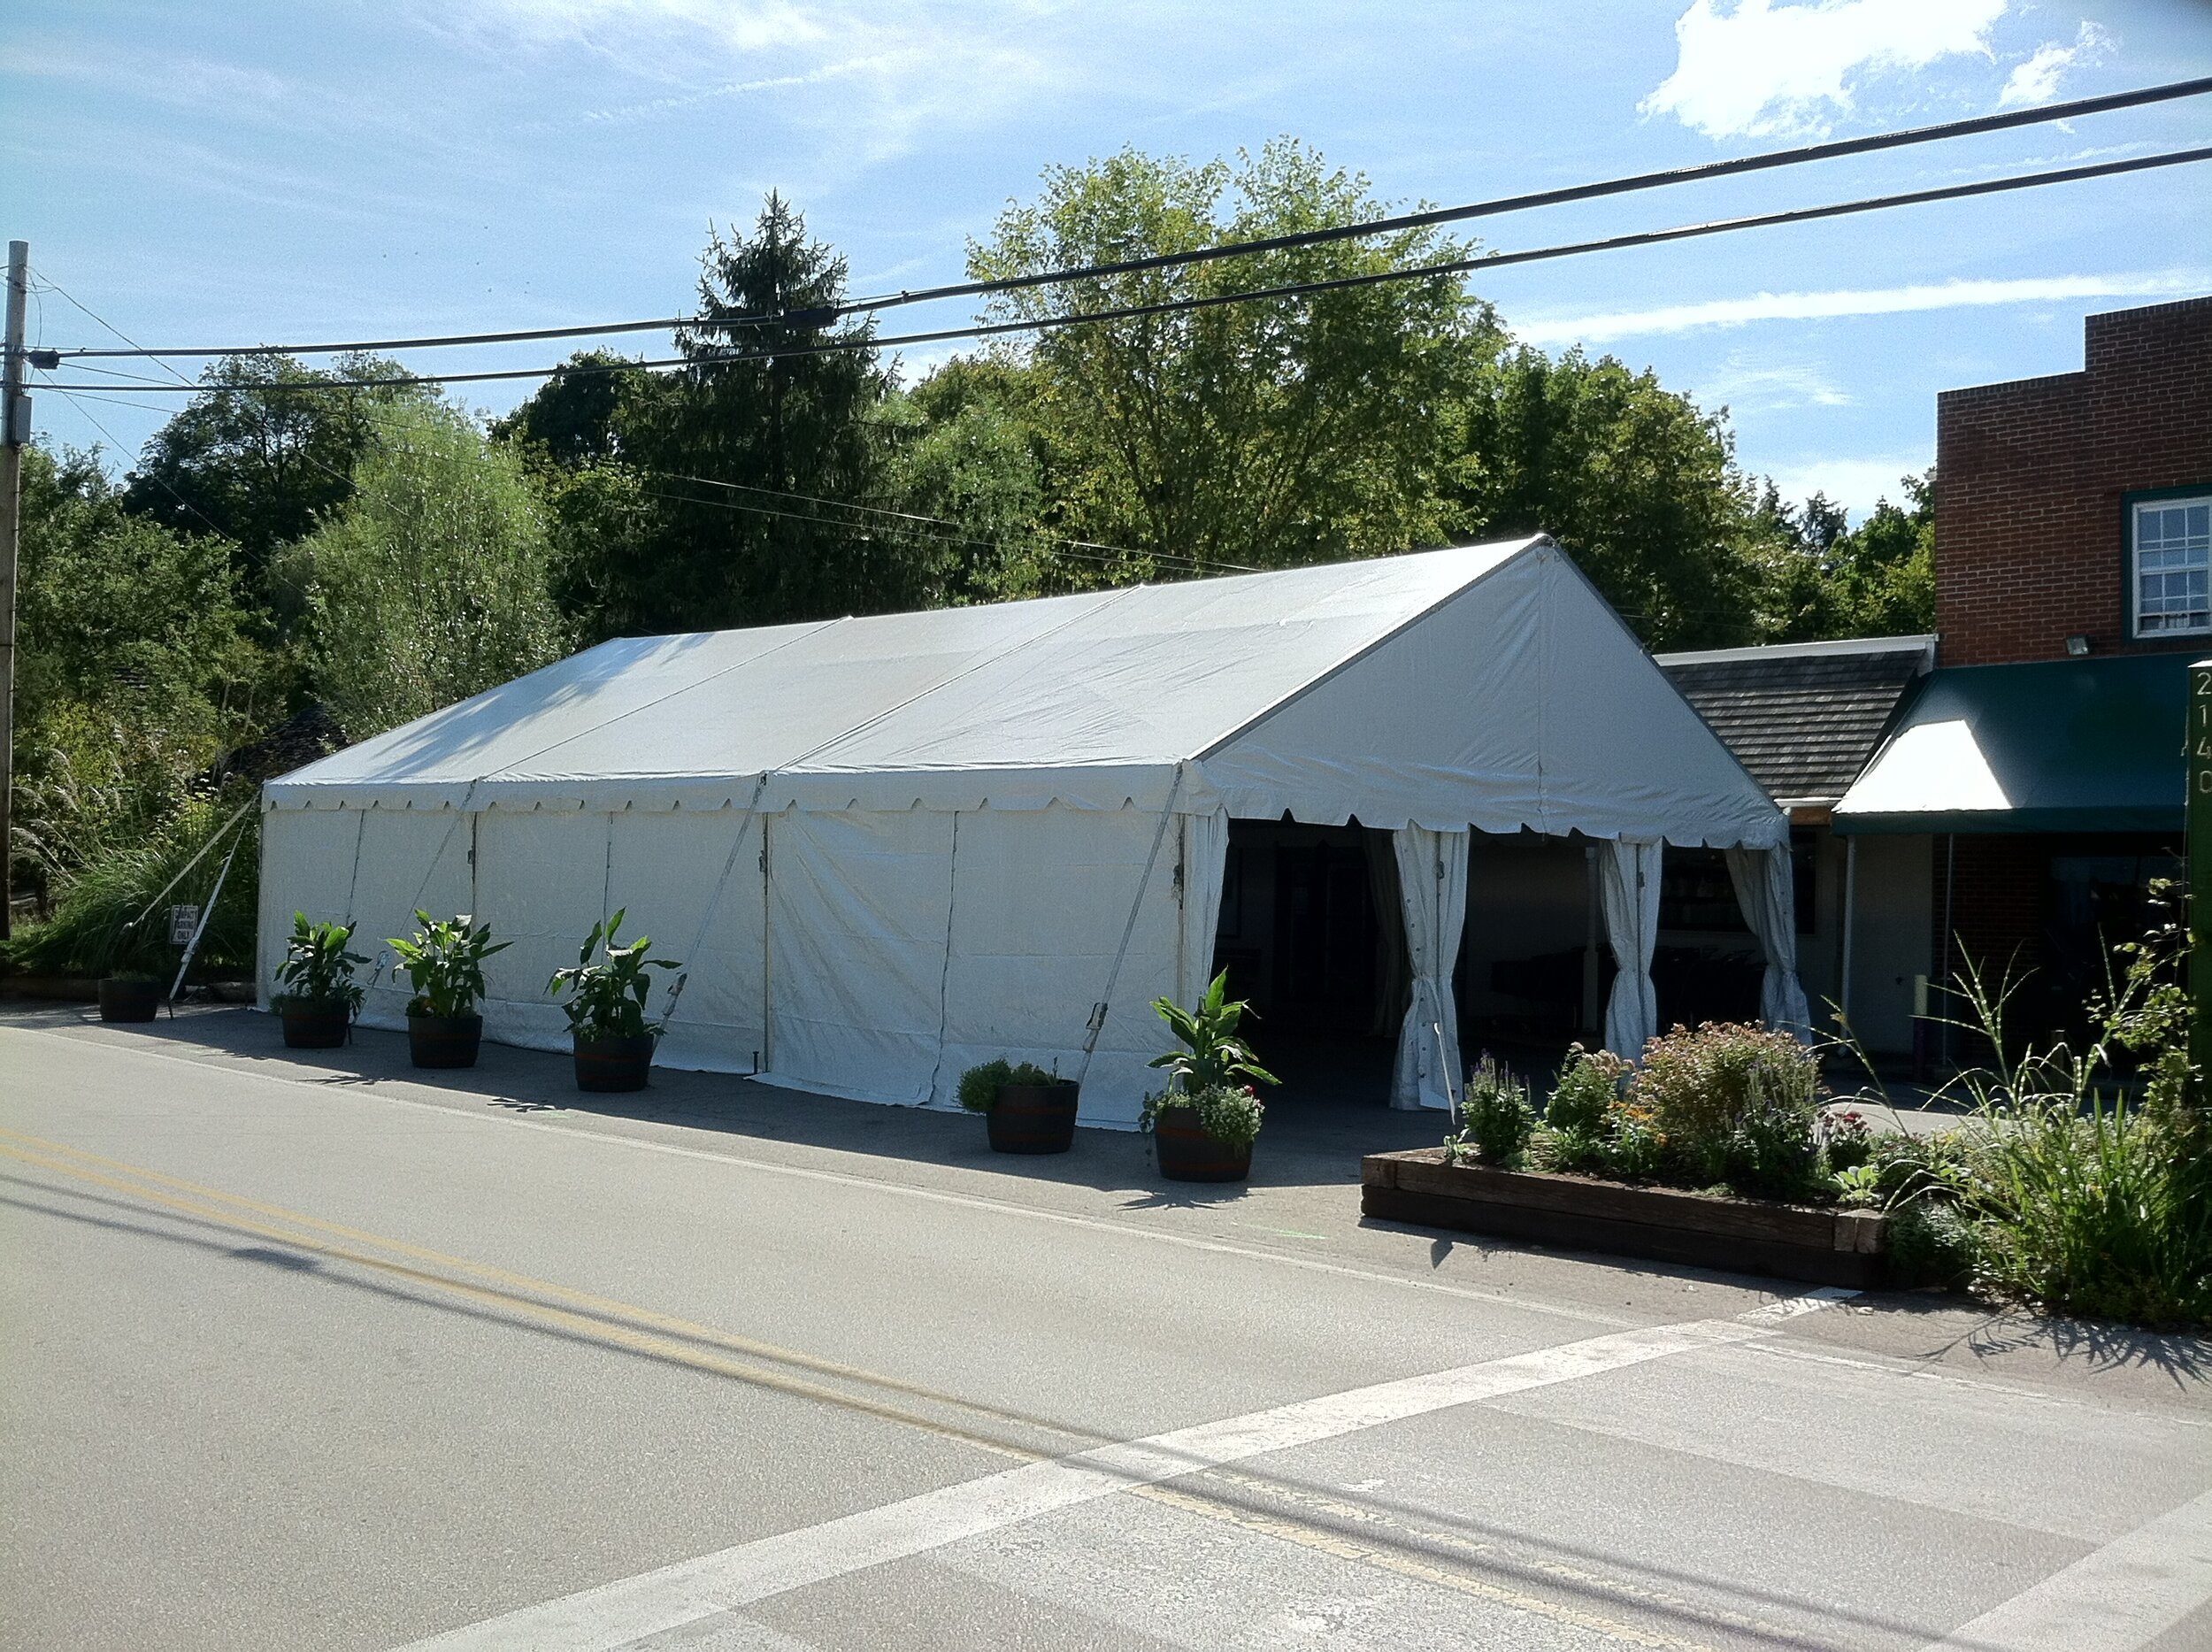 Temporary store tent